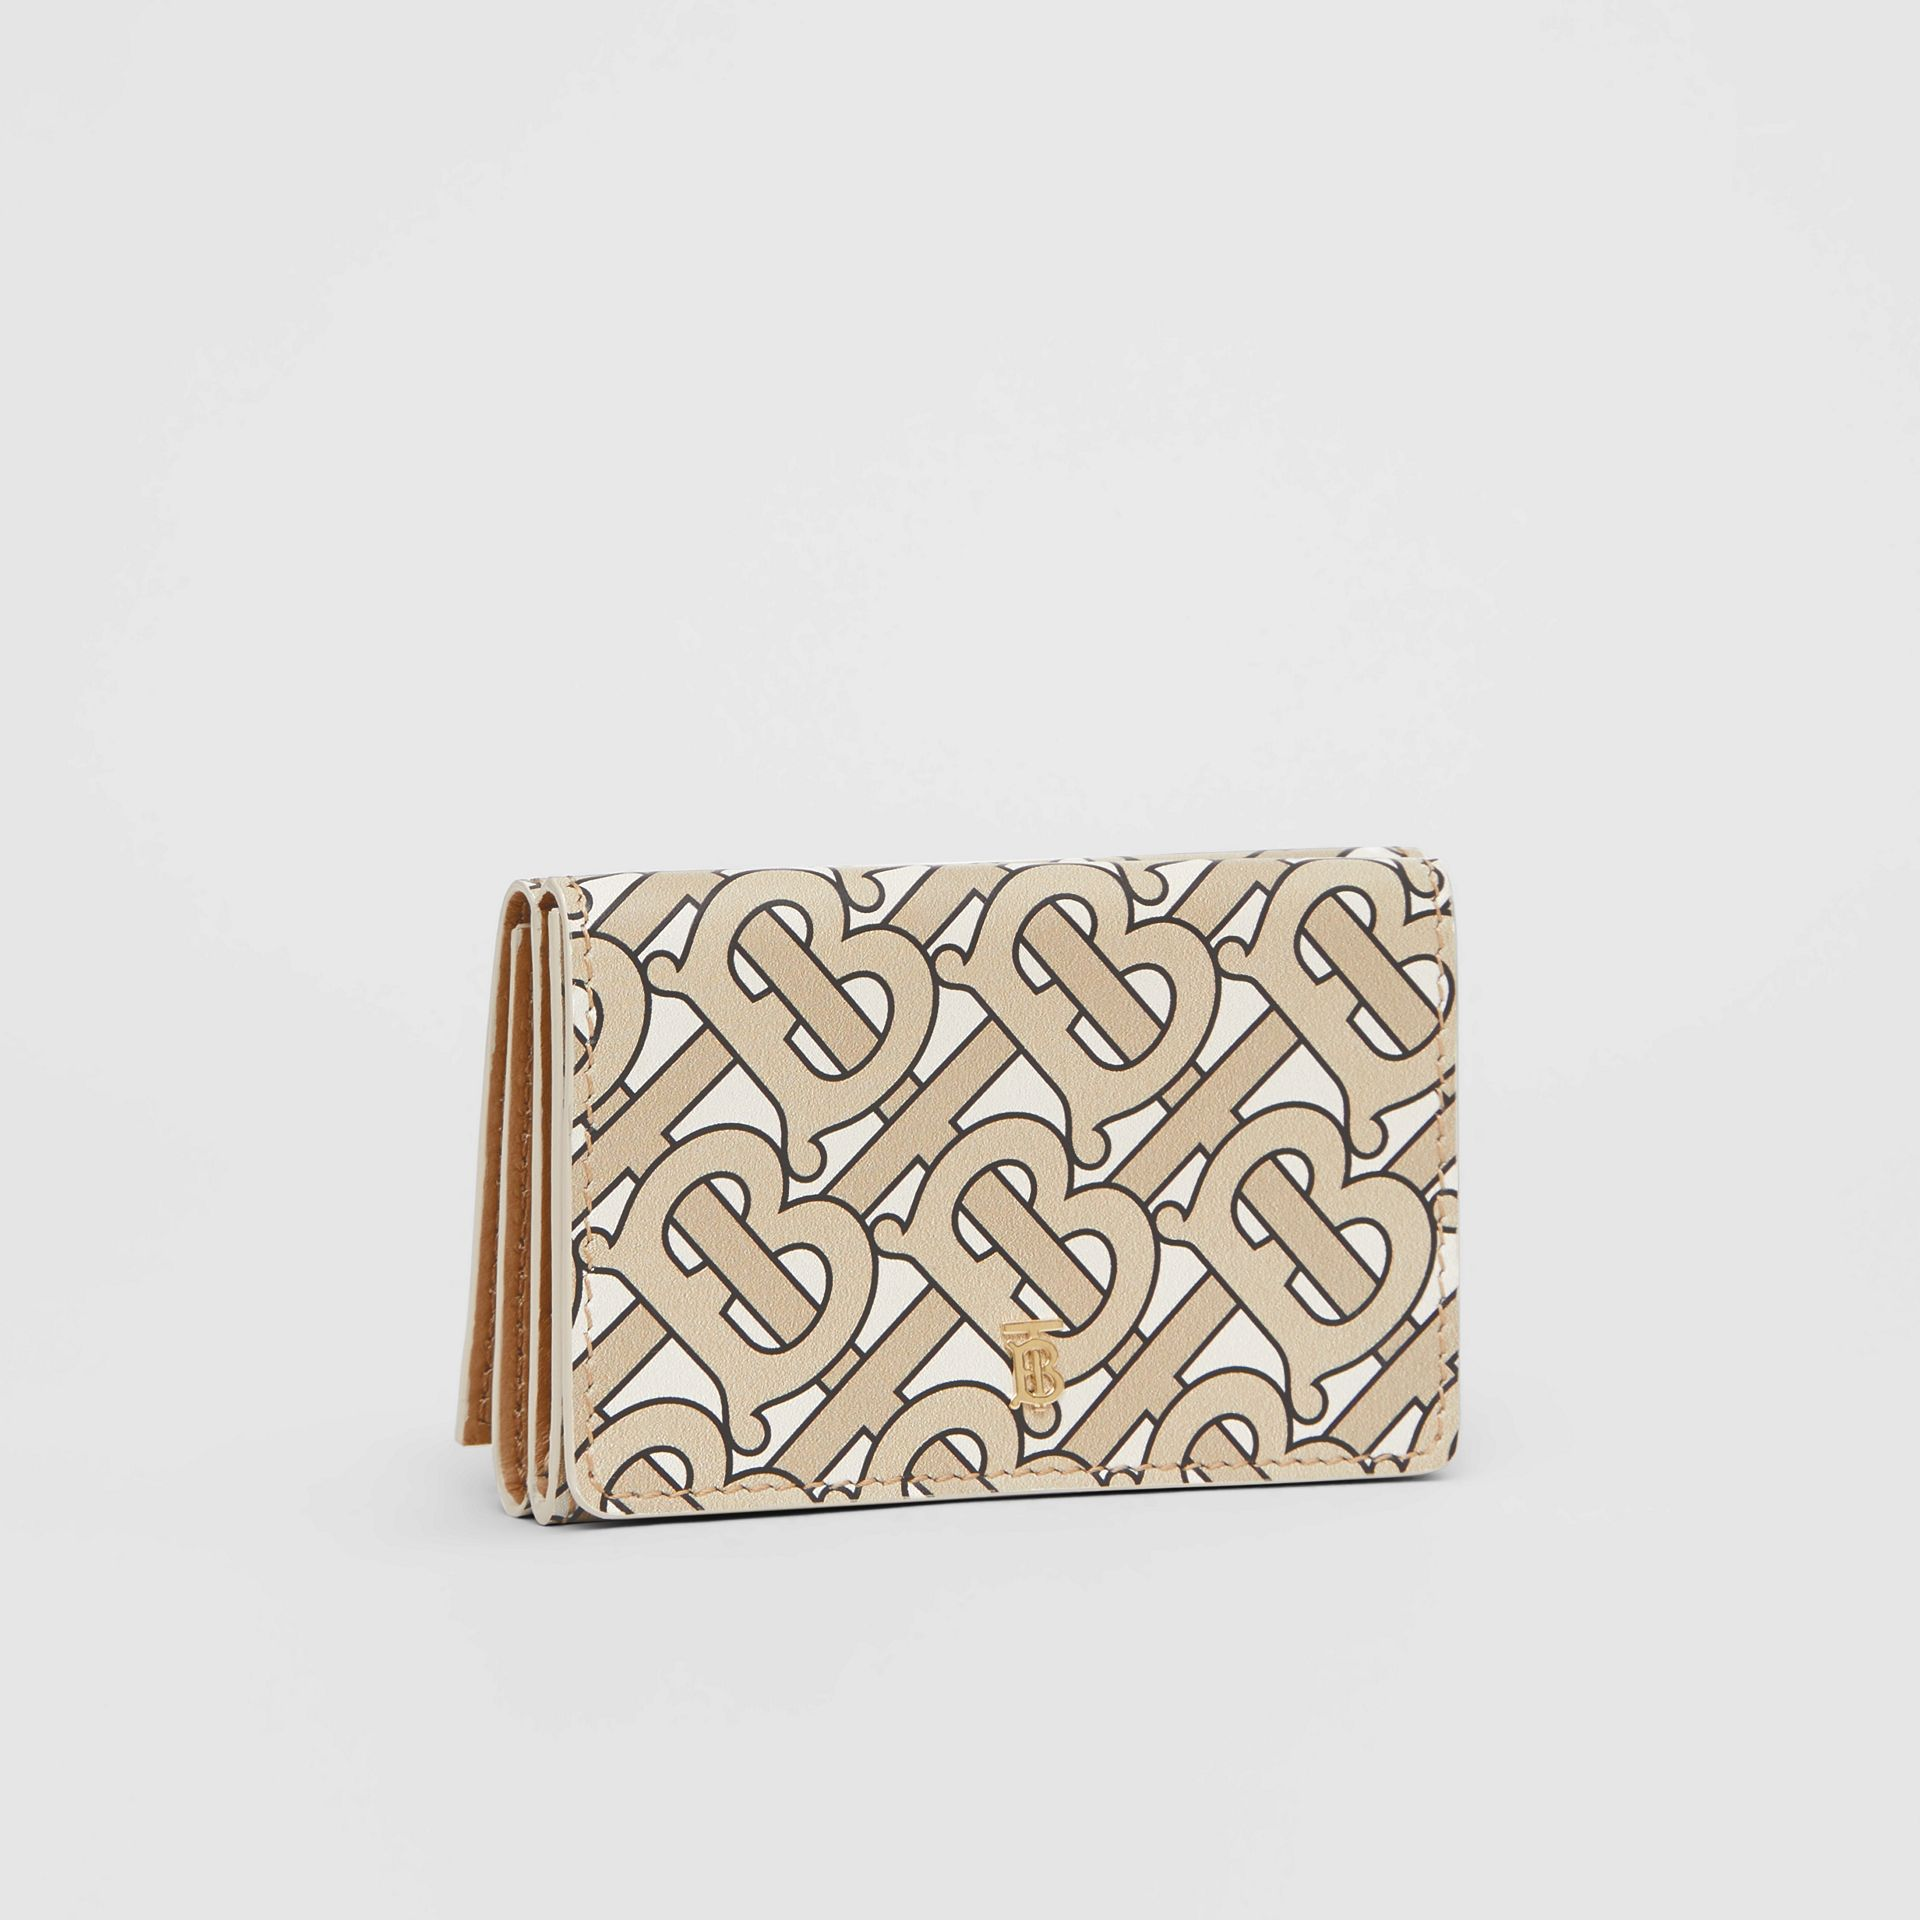 Small Monogram Print Leather Folding Wallet in Beige - Women | Burberry - gallery image 3